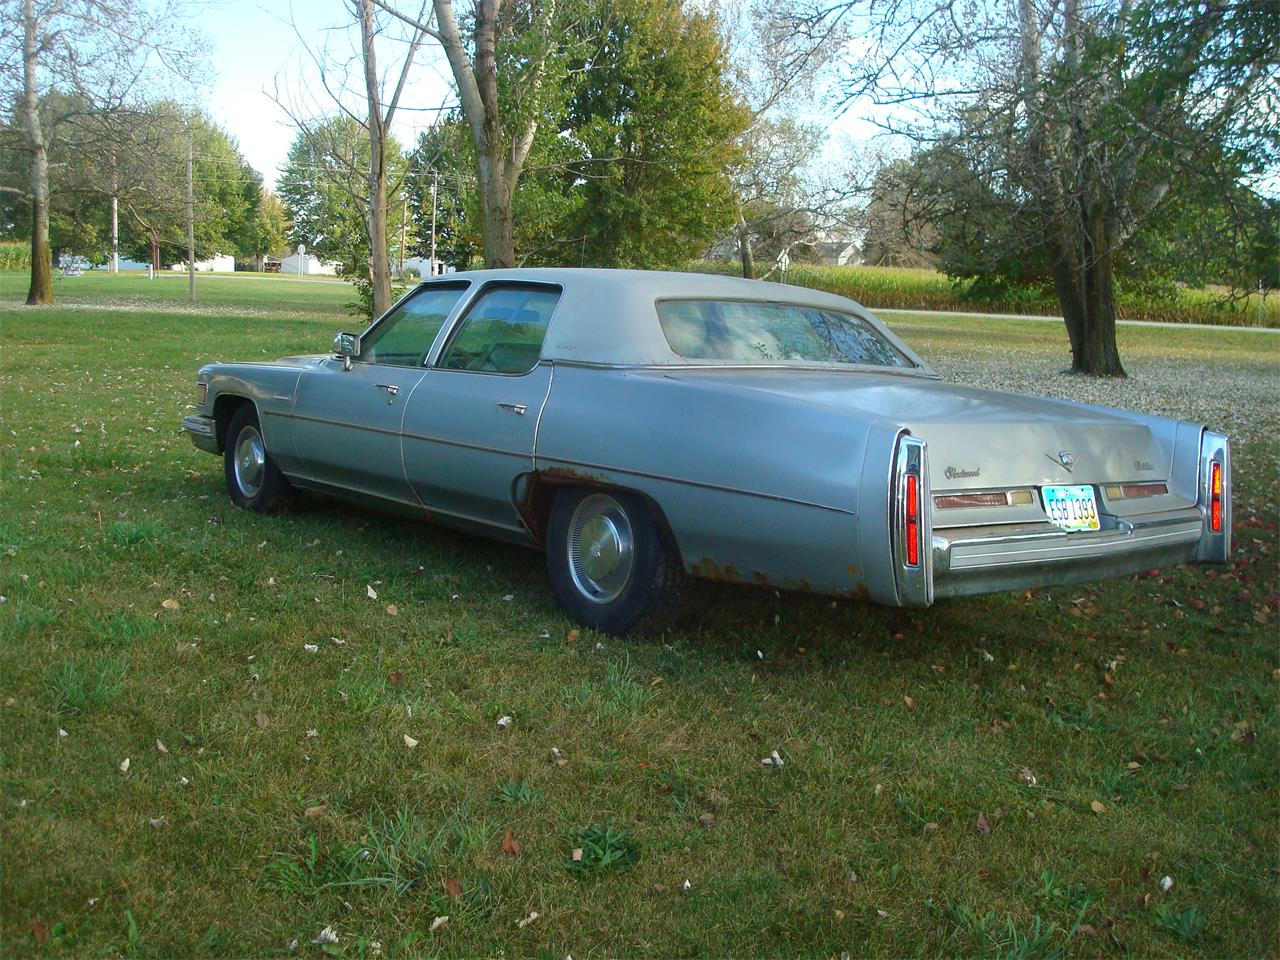 1976 Cadillac Fleetwood Brougham d'Elegance for sale in New London, OH – photo 6